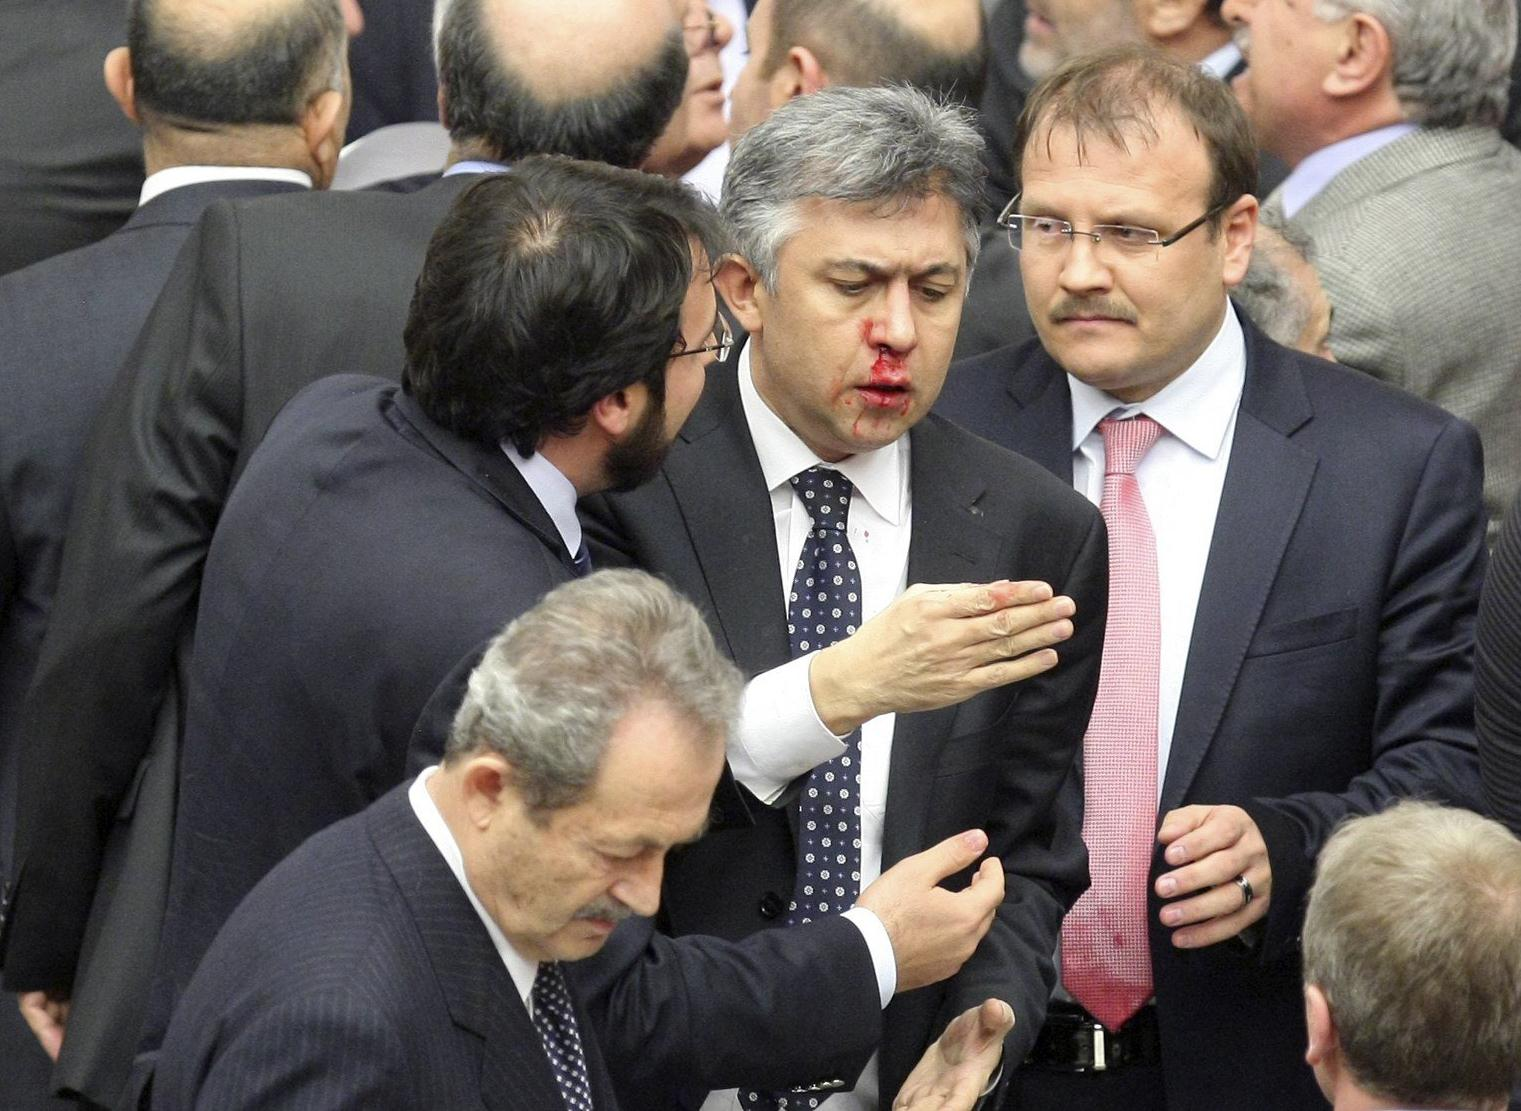 Image: Member of parliament from Republican People's Party Ali Ihsan Kokturk's nose bleeds in Ankara